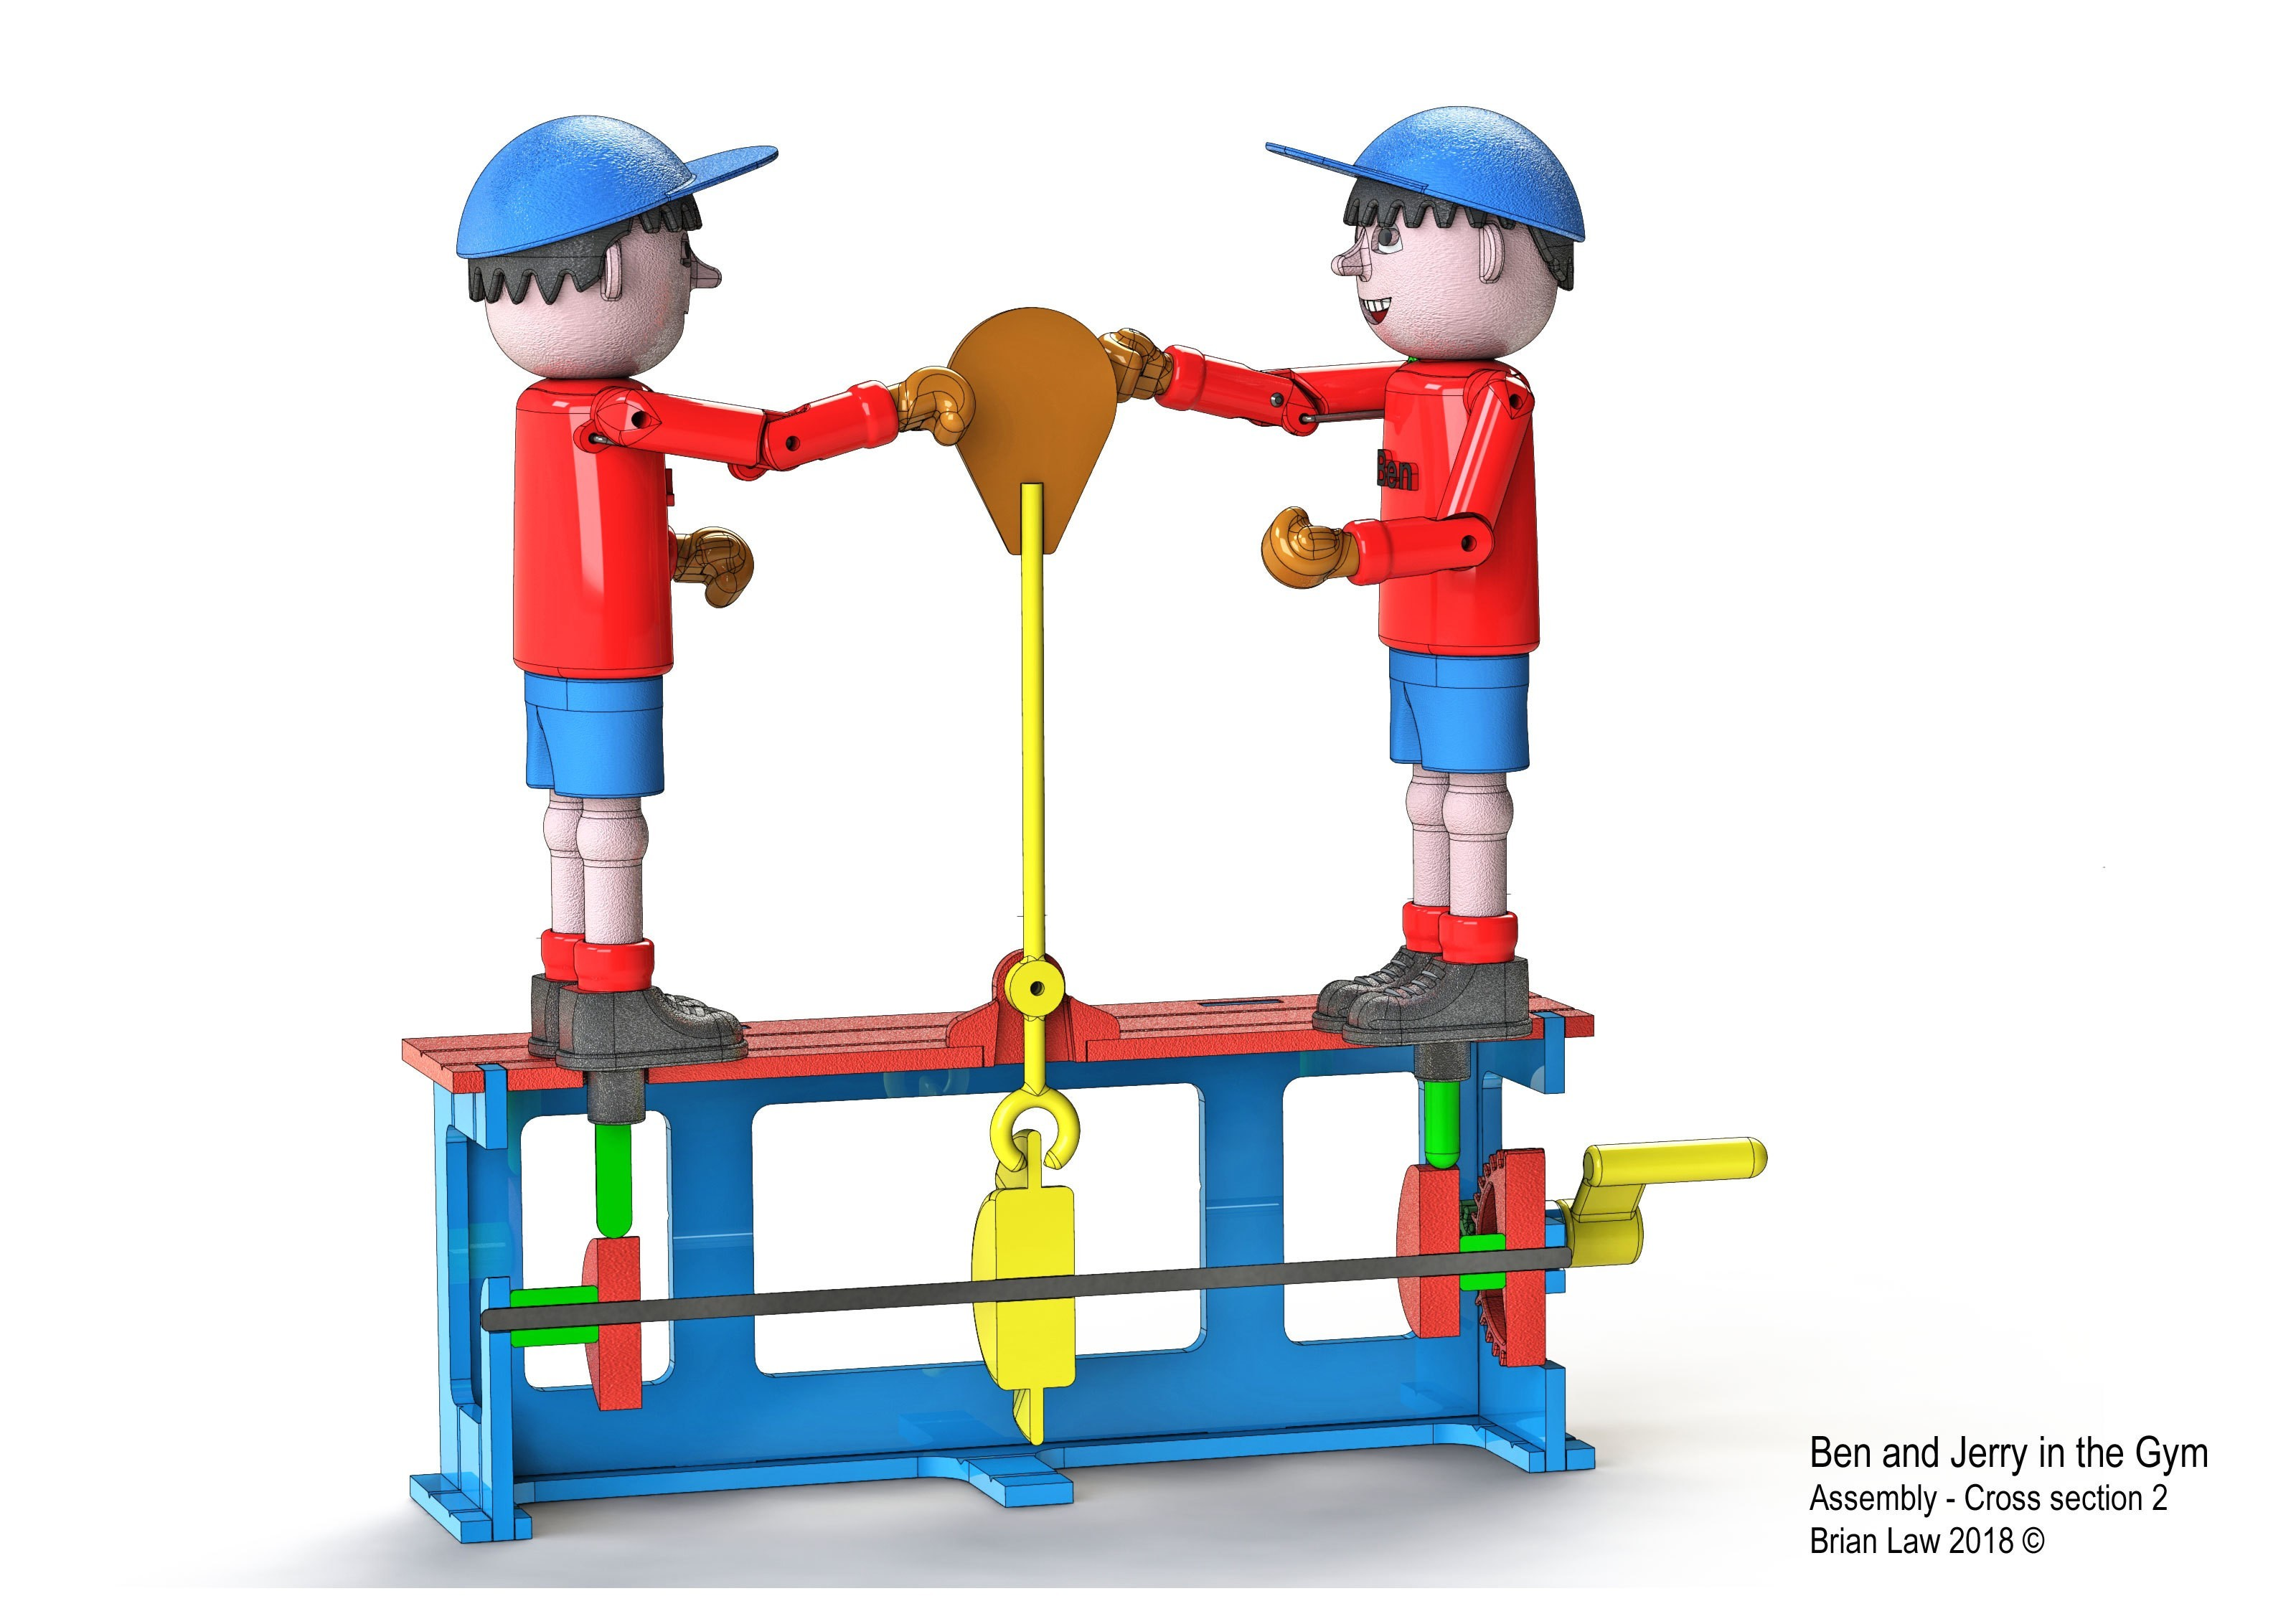 Ben-and-Jerry-3.jpg Download free STL file Ben and Jerry at the Gymnasium • 3D printer object, woodenclocks